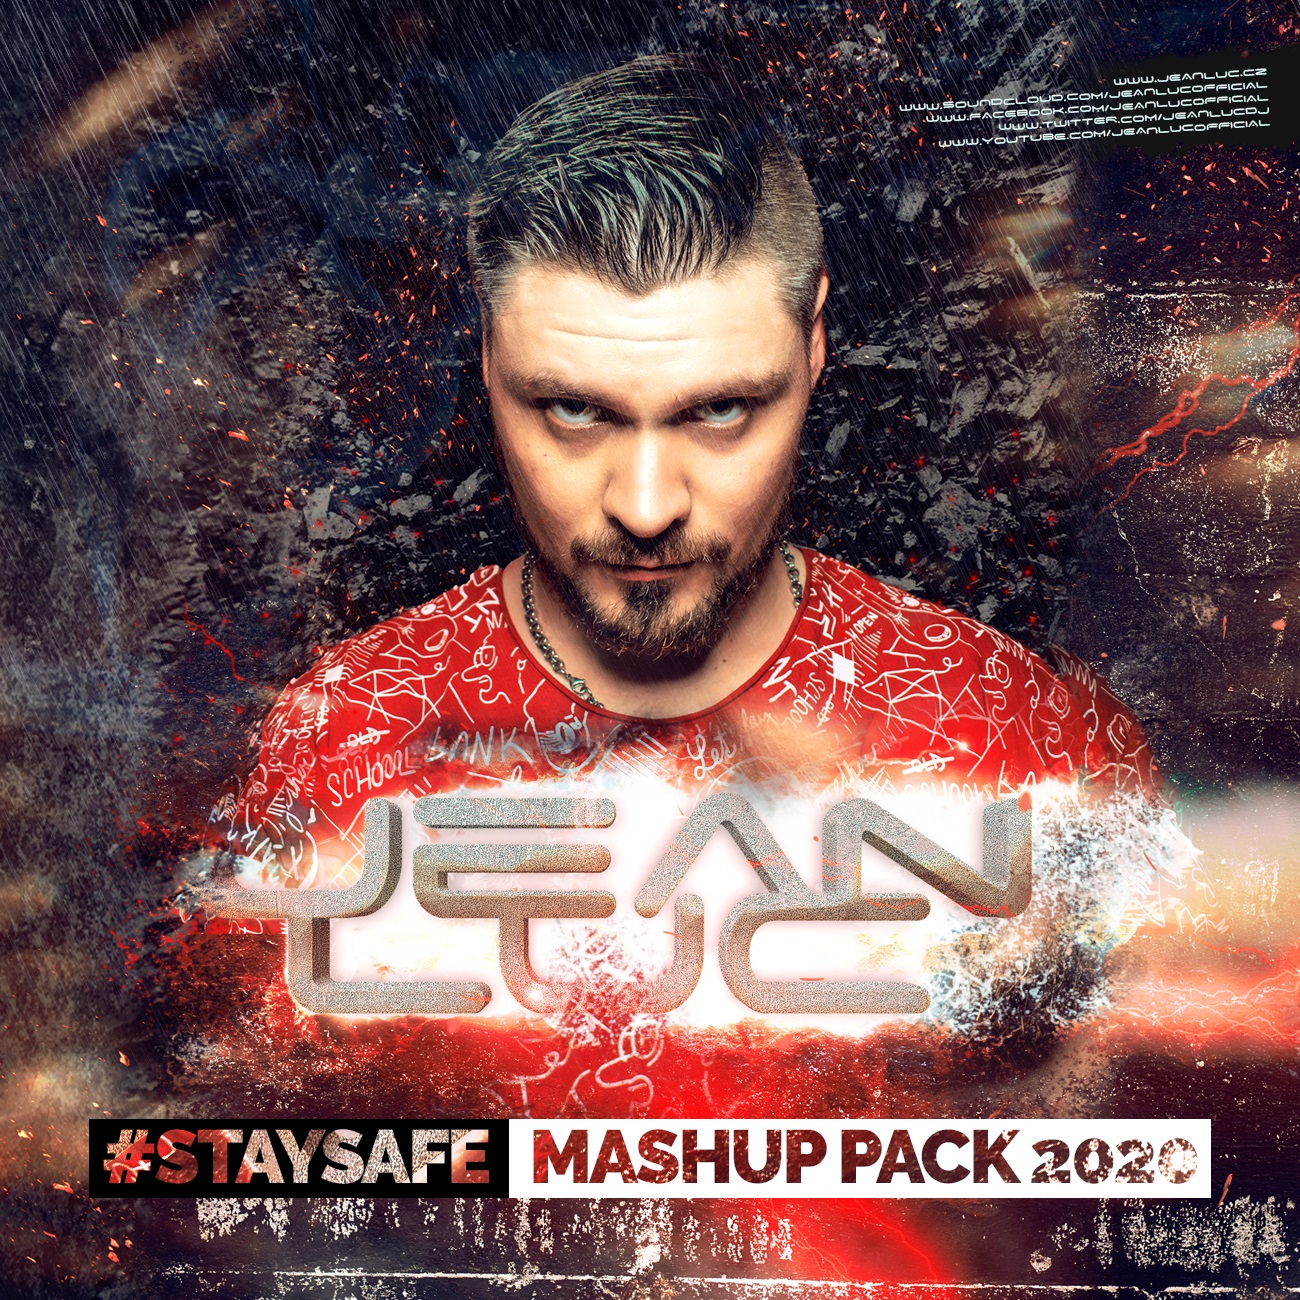 Jean Luc - StaySafe Mashup Pack 2020